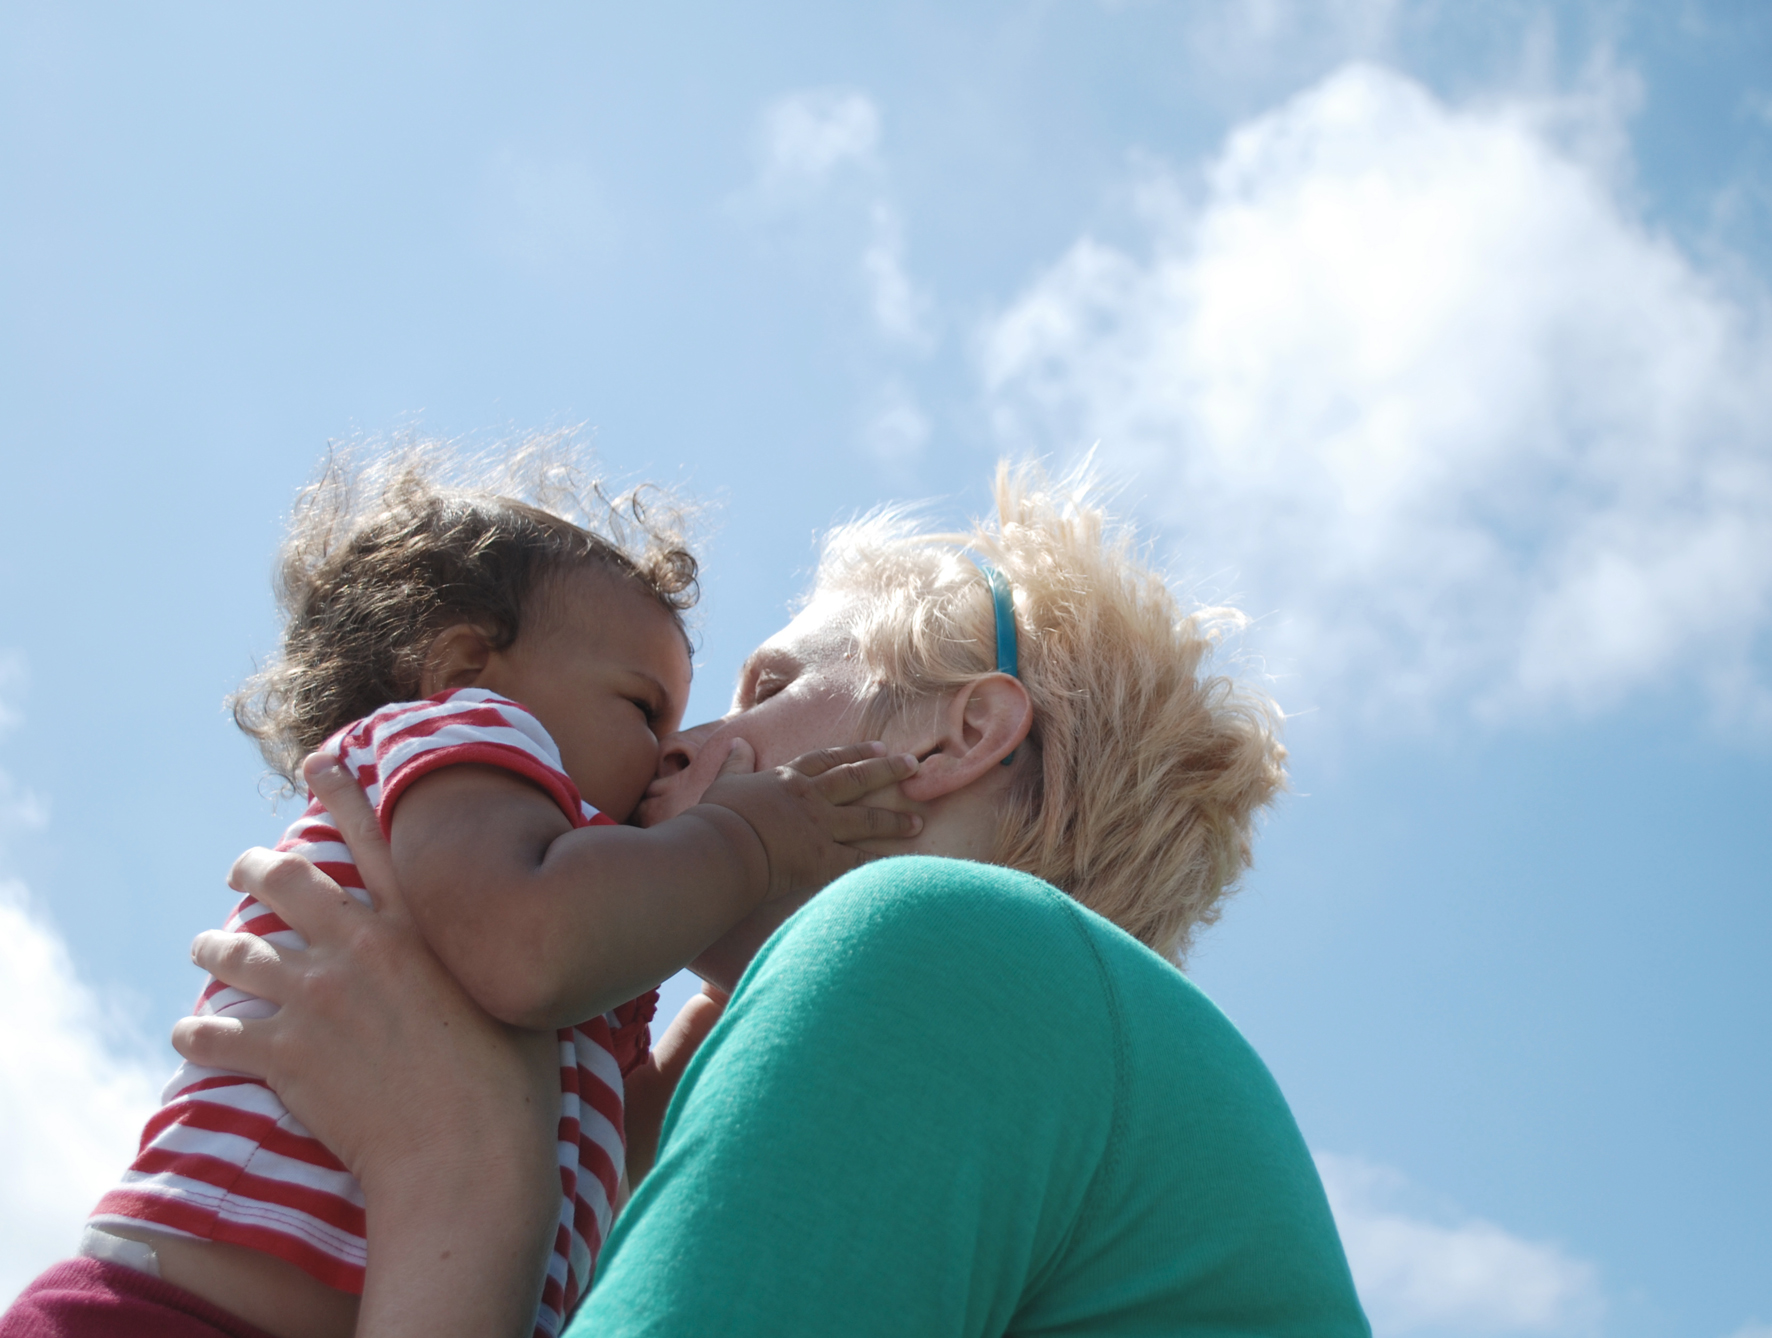 Outdoor portrait of baby and mum